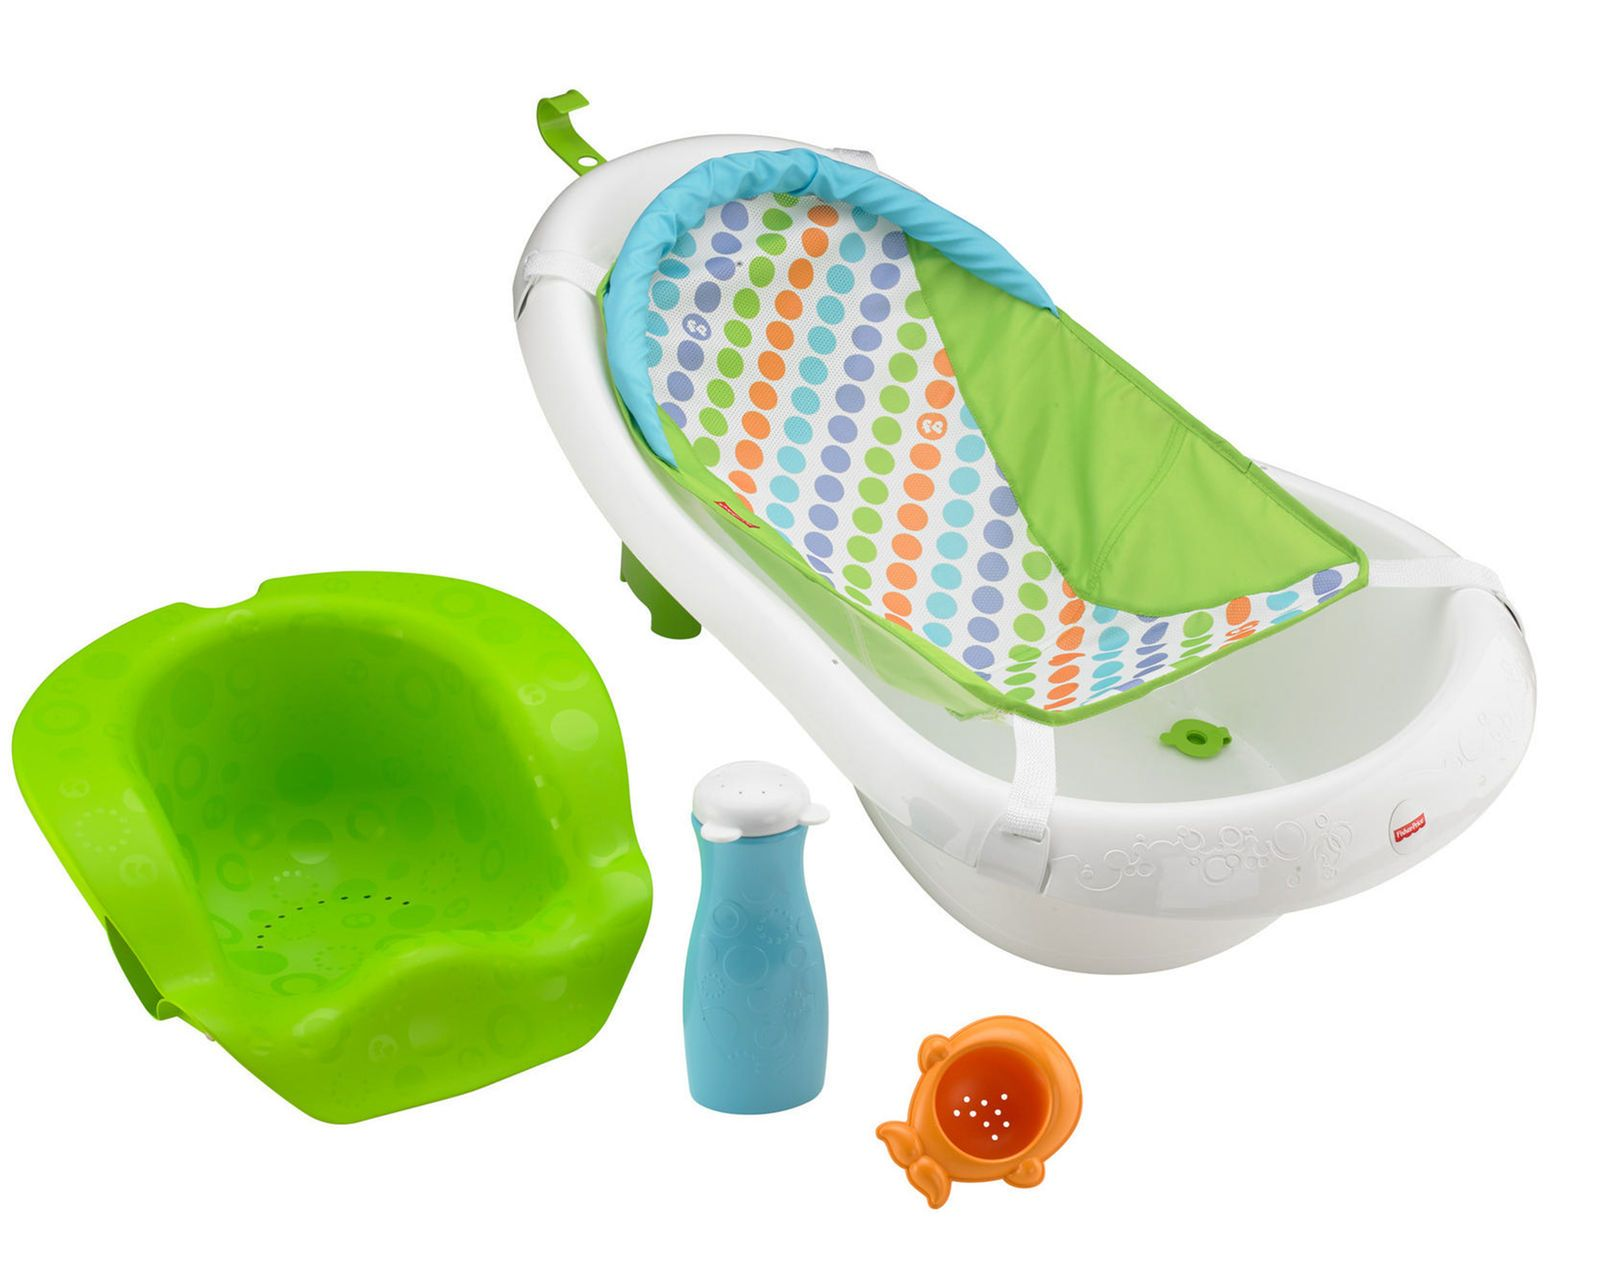 Fisher-Price 4-in-1 Sling \'n Seat Tub: Four-stage bath center now ...